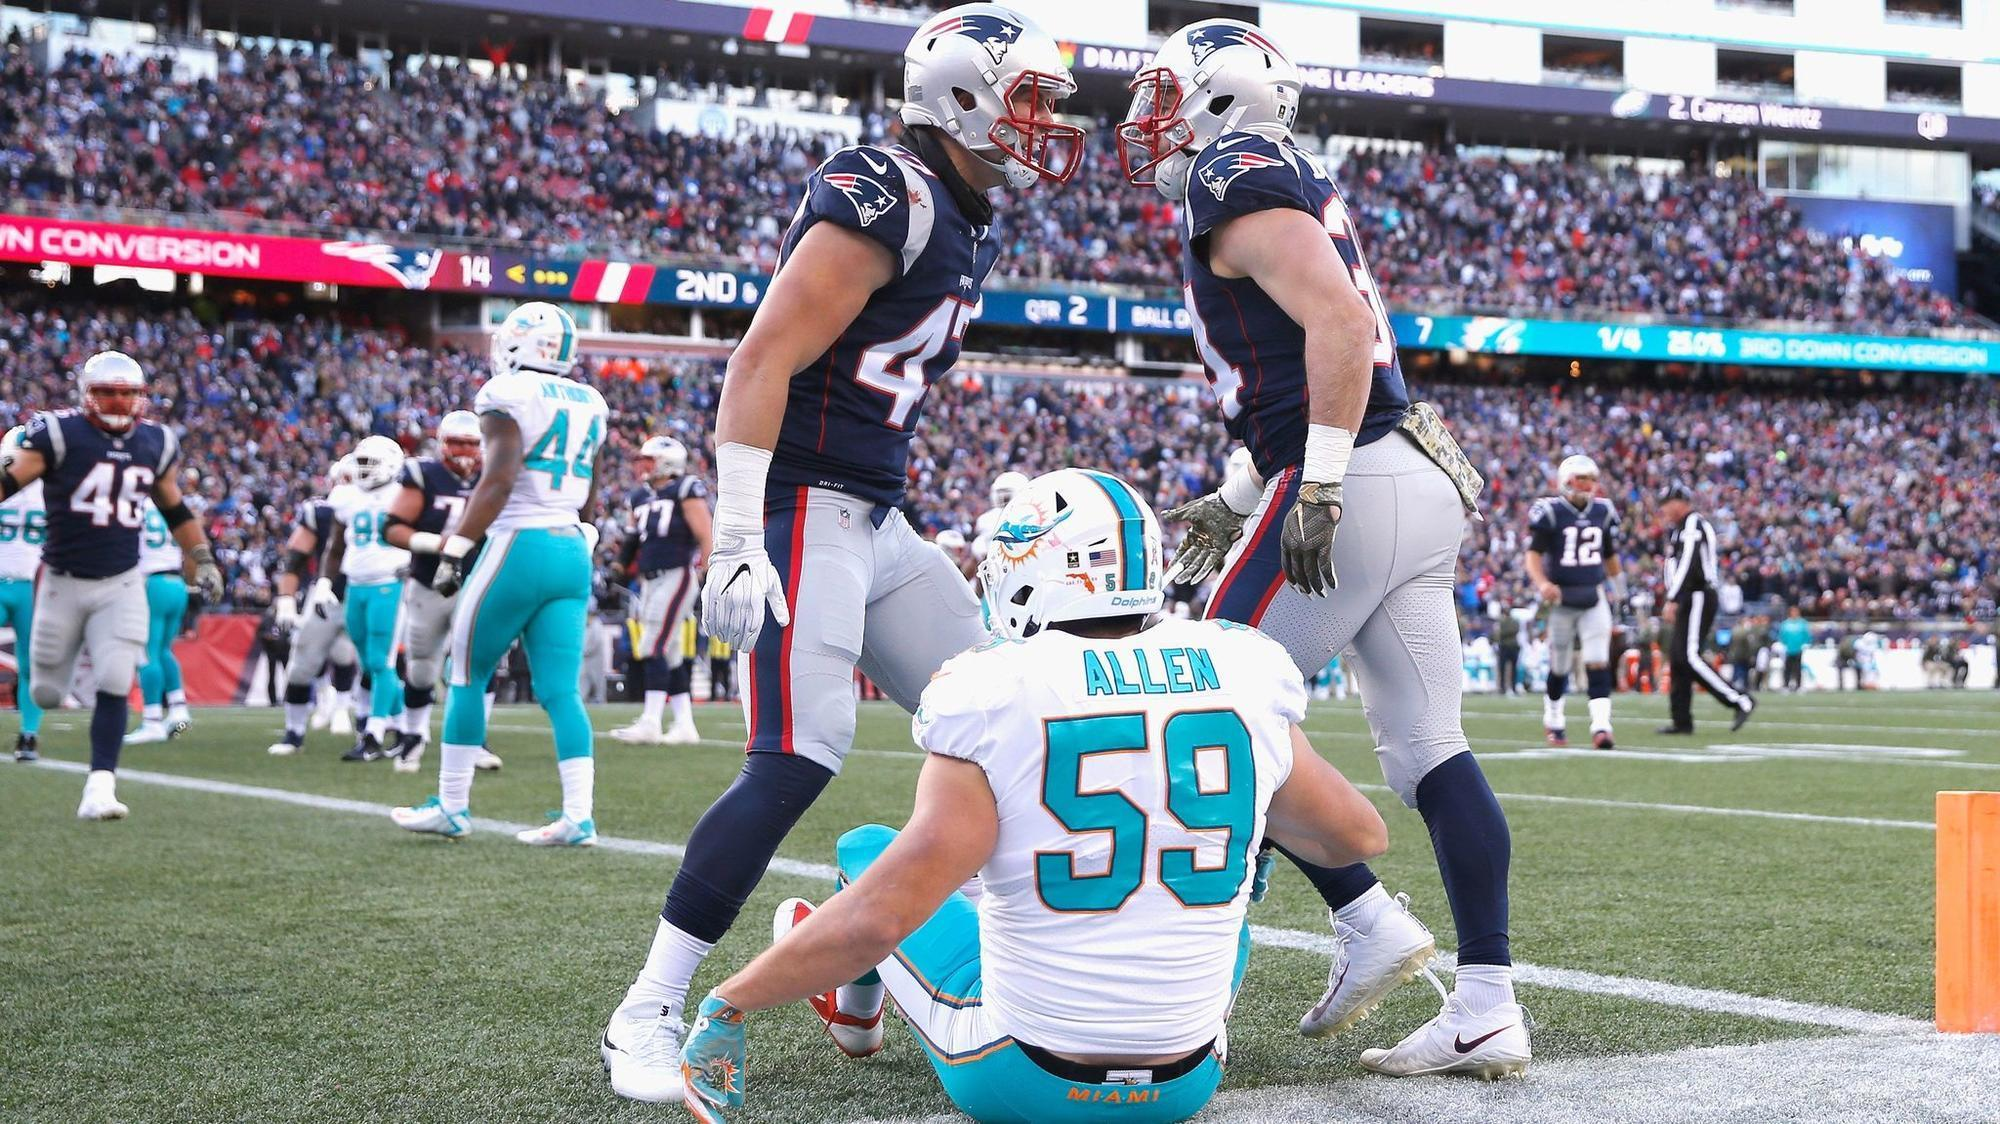 Fl-sp-hyde10-dolphins-pats-thoughts-20171126